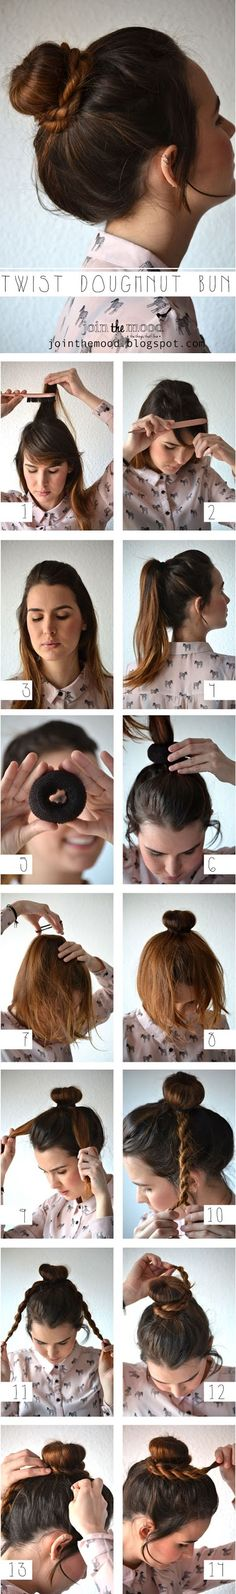 gonna try this..